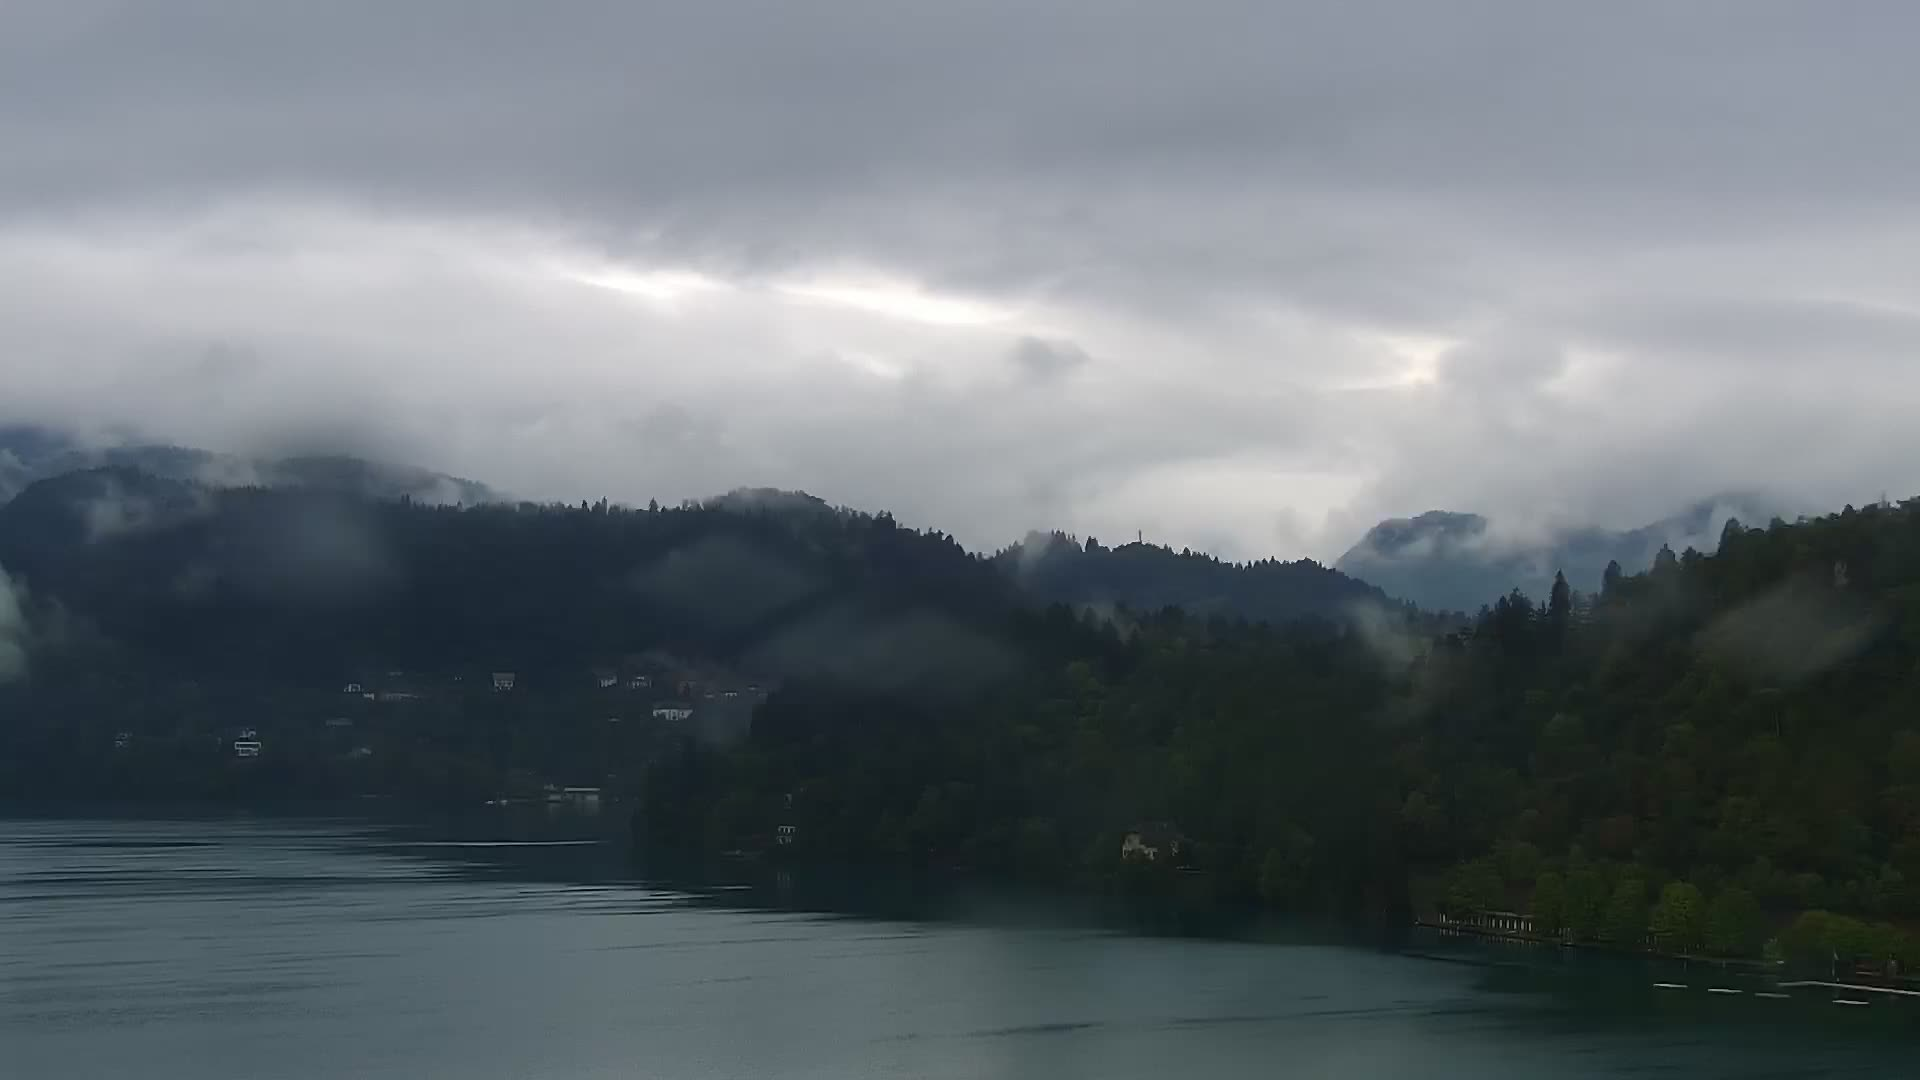 Bled Wed. 09:52